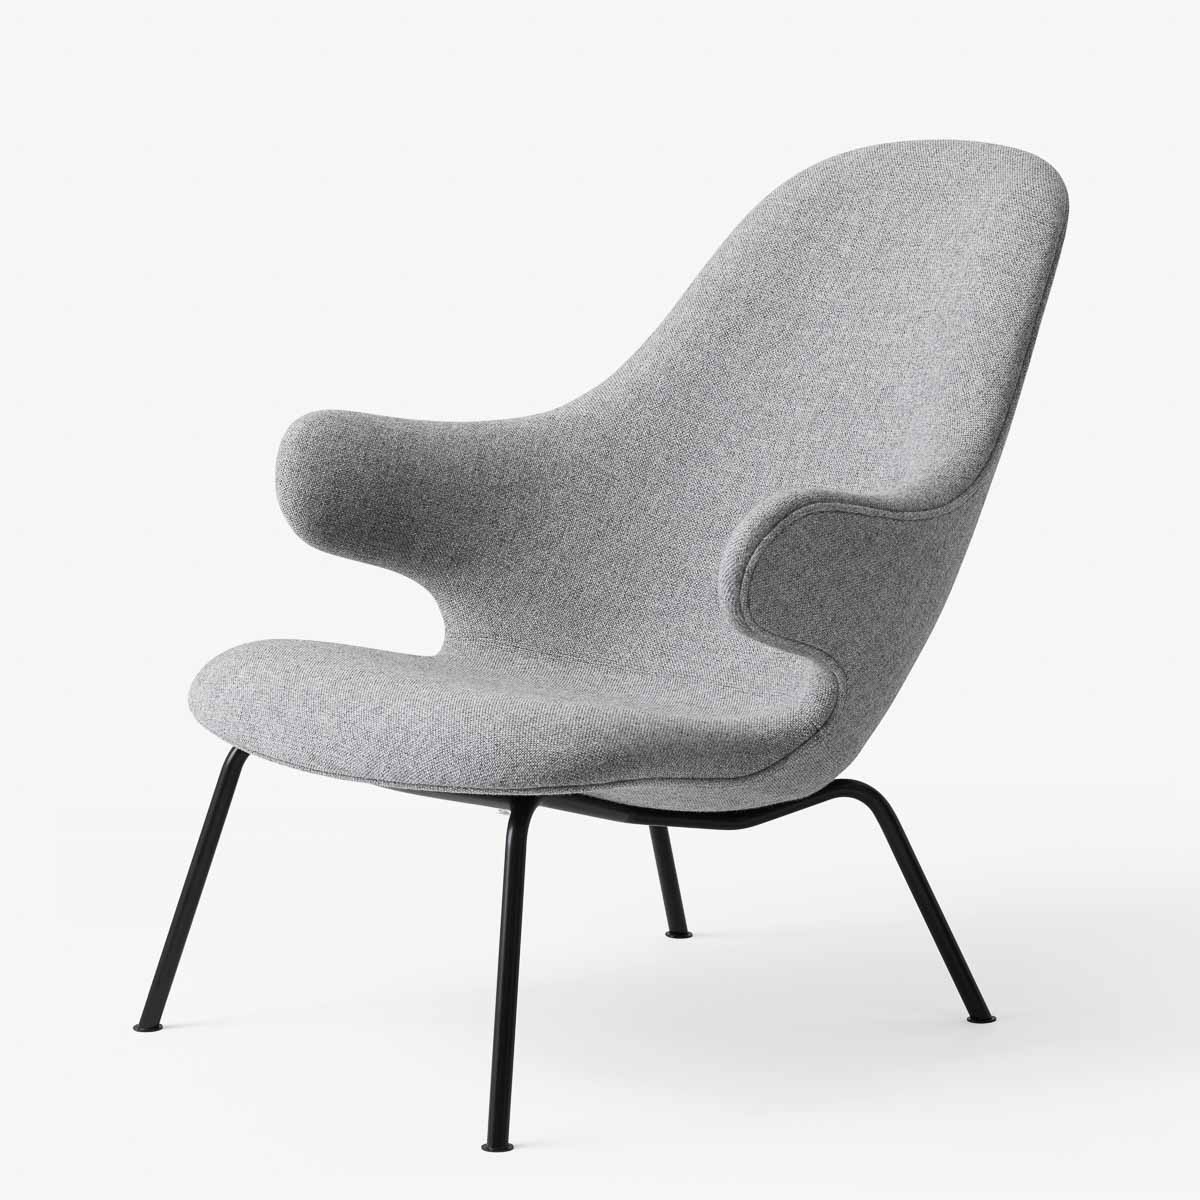 Lounge Sessel Berlin Catch Lounge Chair By Jaime Hayon Von Tradition Creme Guides